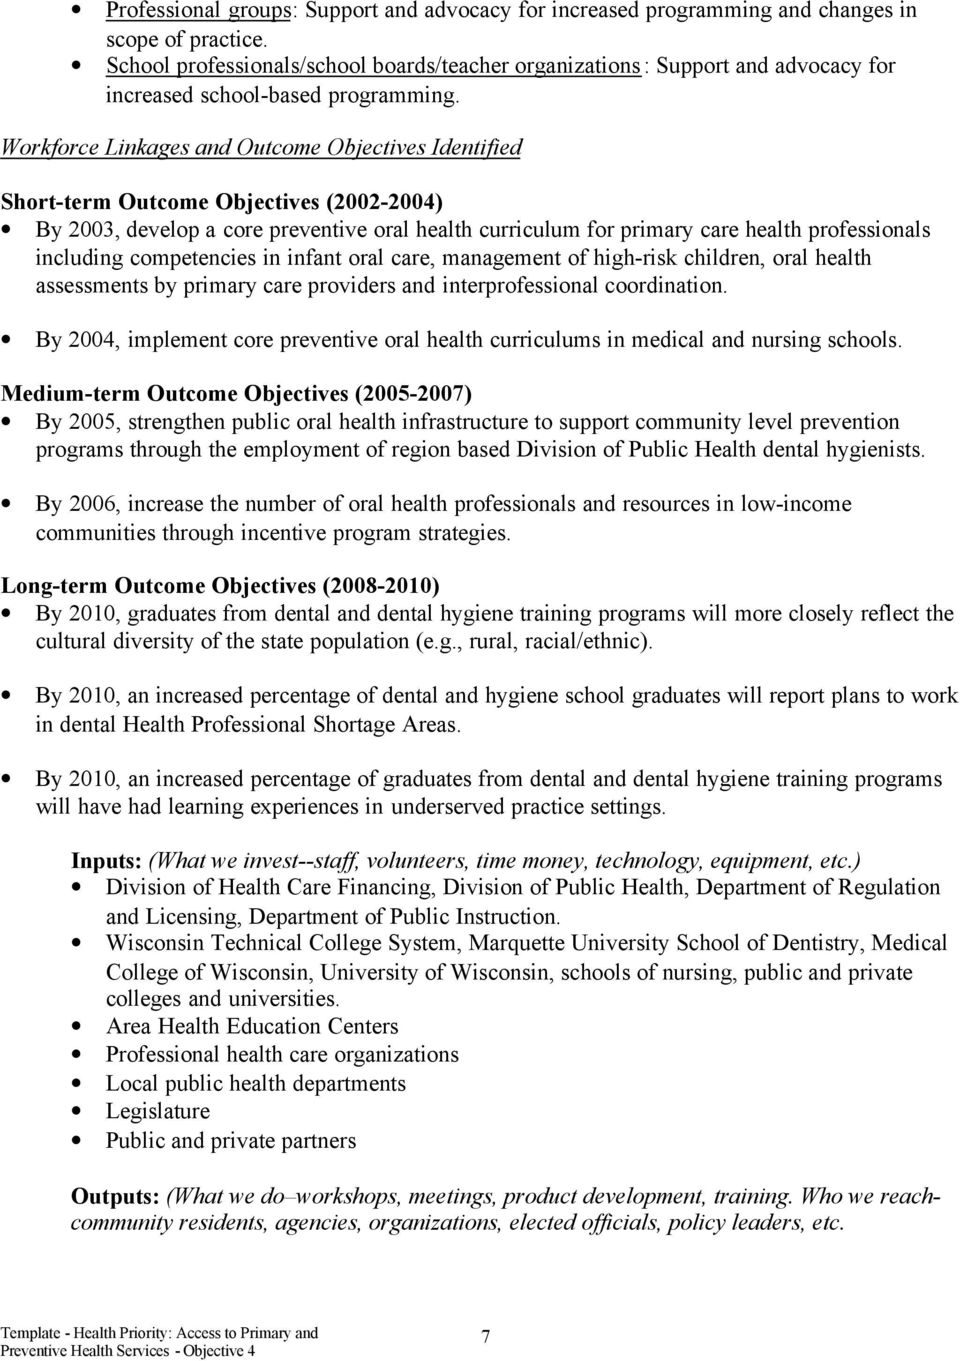 Workforce Linkages and Outcome Objectives Identified Short-term Outcome Objectives (2002-2004) By 2003, develop a core preventive oral health curriculum for primary care health professionals